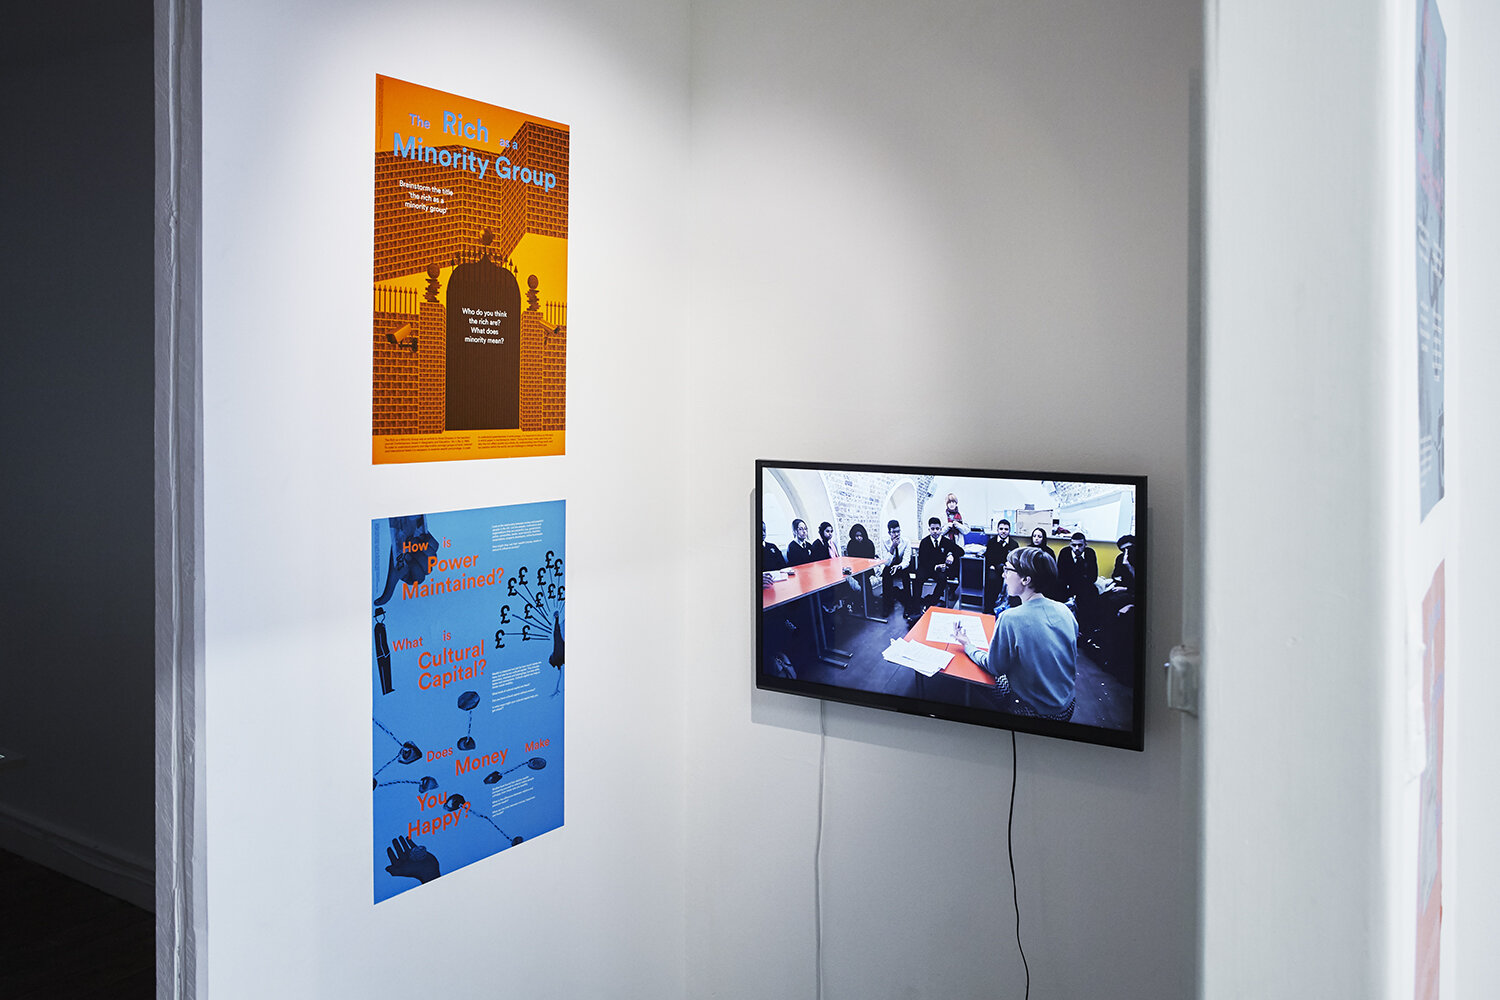 The Alternative School of Economics (Ruth Beale & Amy Feneck). Fieldwork: Finding out about the rich (2016). Digital video, colour, sound, 30:09 min. Photo: SixtyEight Art Institute, 2019.